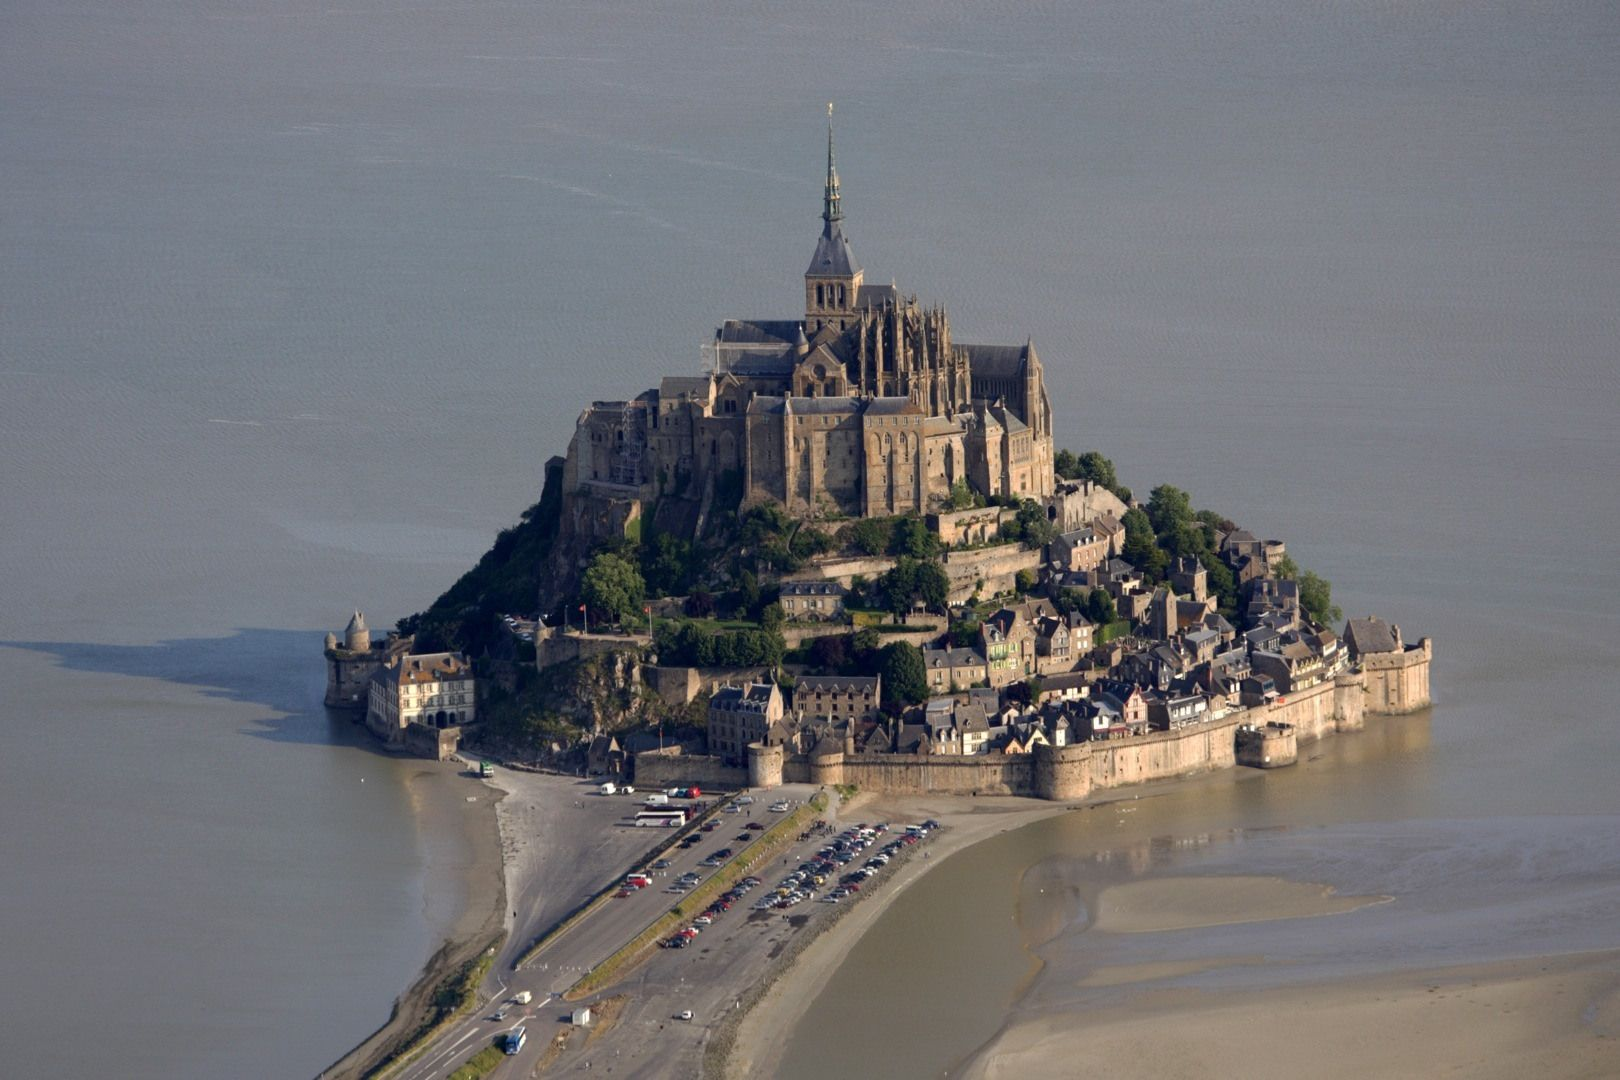 Mont Saint-Michel is a rocky tidal island and a commune in Normandy, France. It is located approximately one kilometre (just over half a mile) off the country's north coast, at the mouth of the Couesnon River near Avranches.